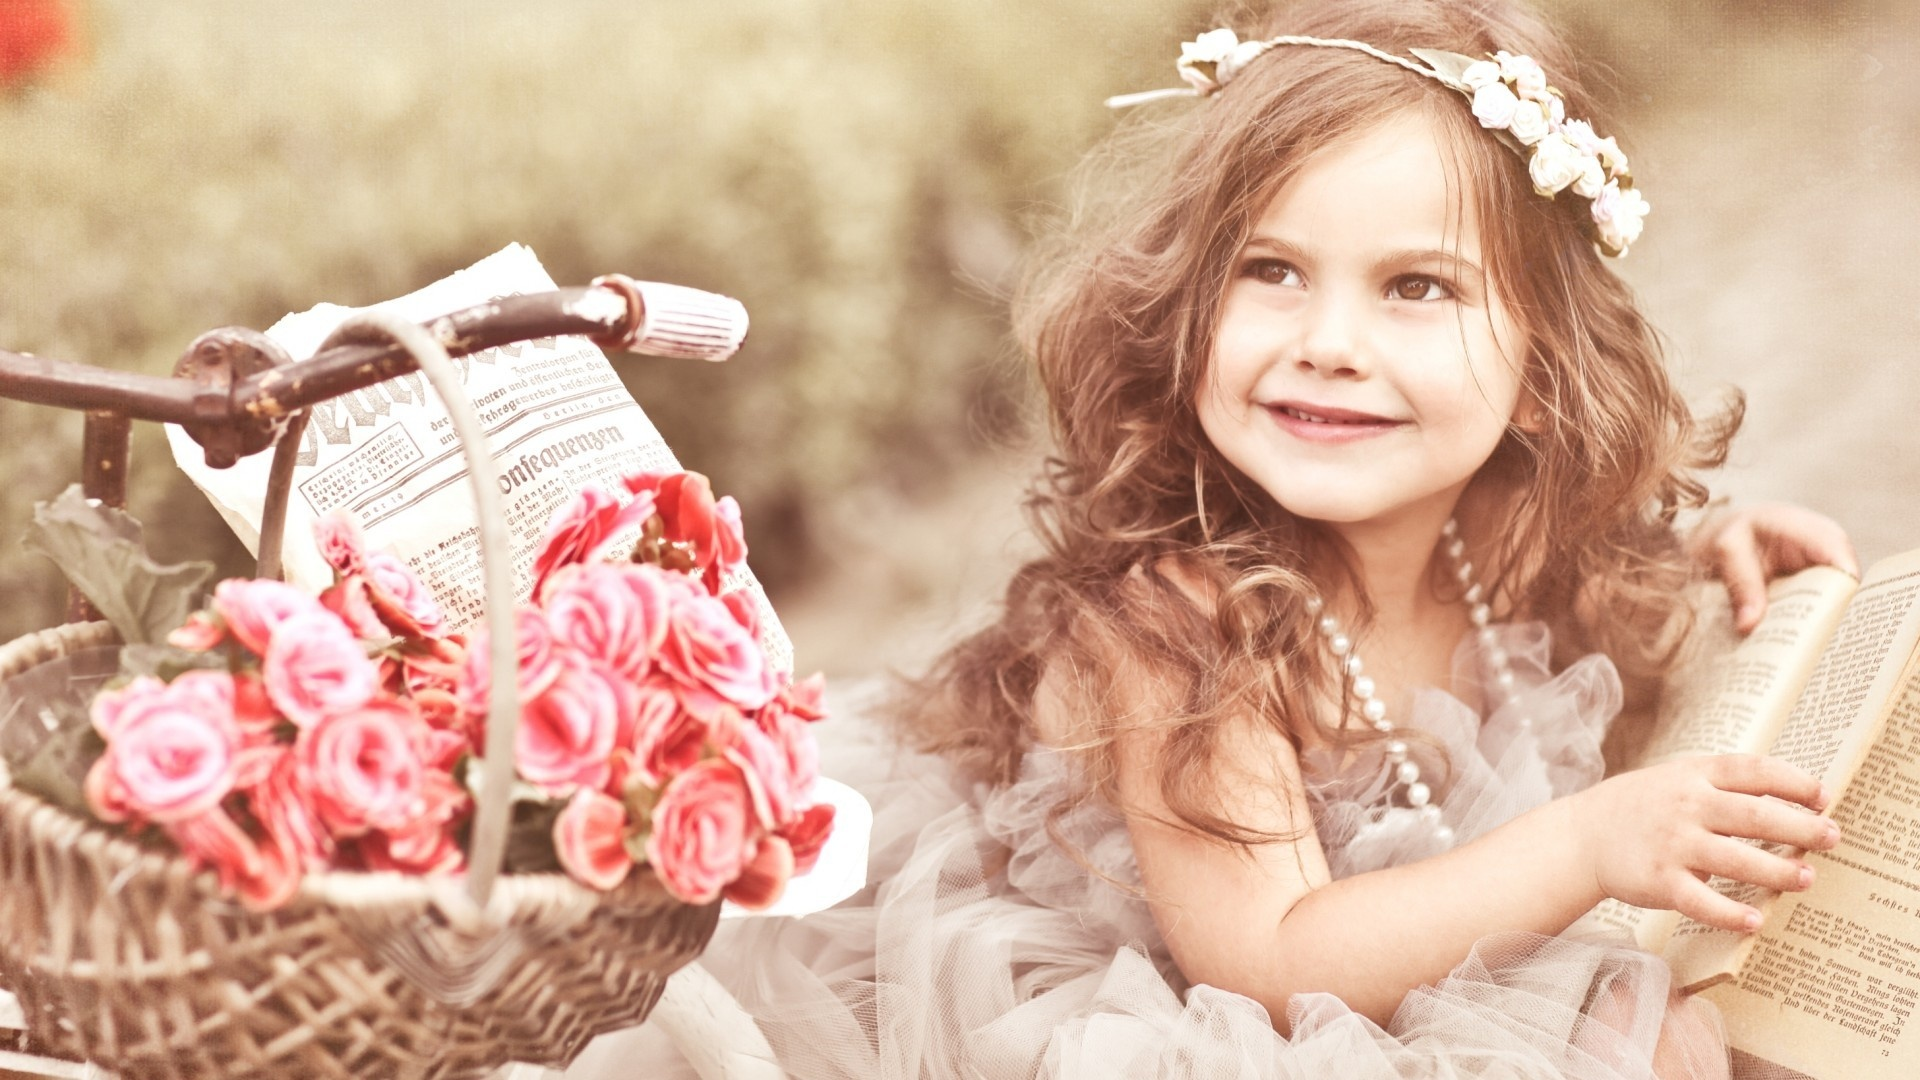 Beautiful Baby With Book Wallpapers - 1920x1080 - 534910